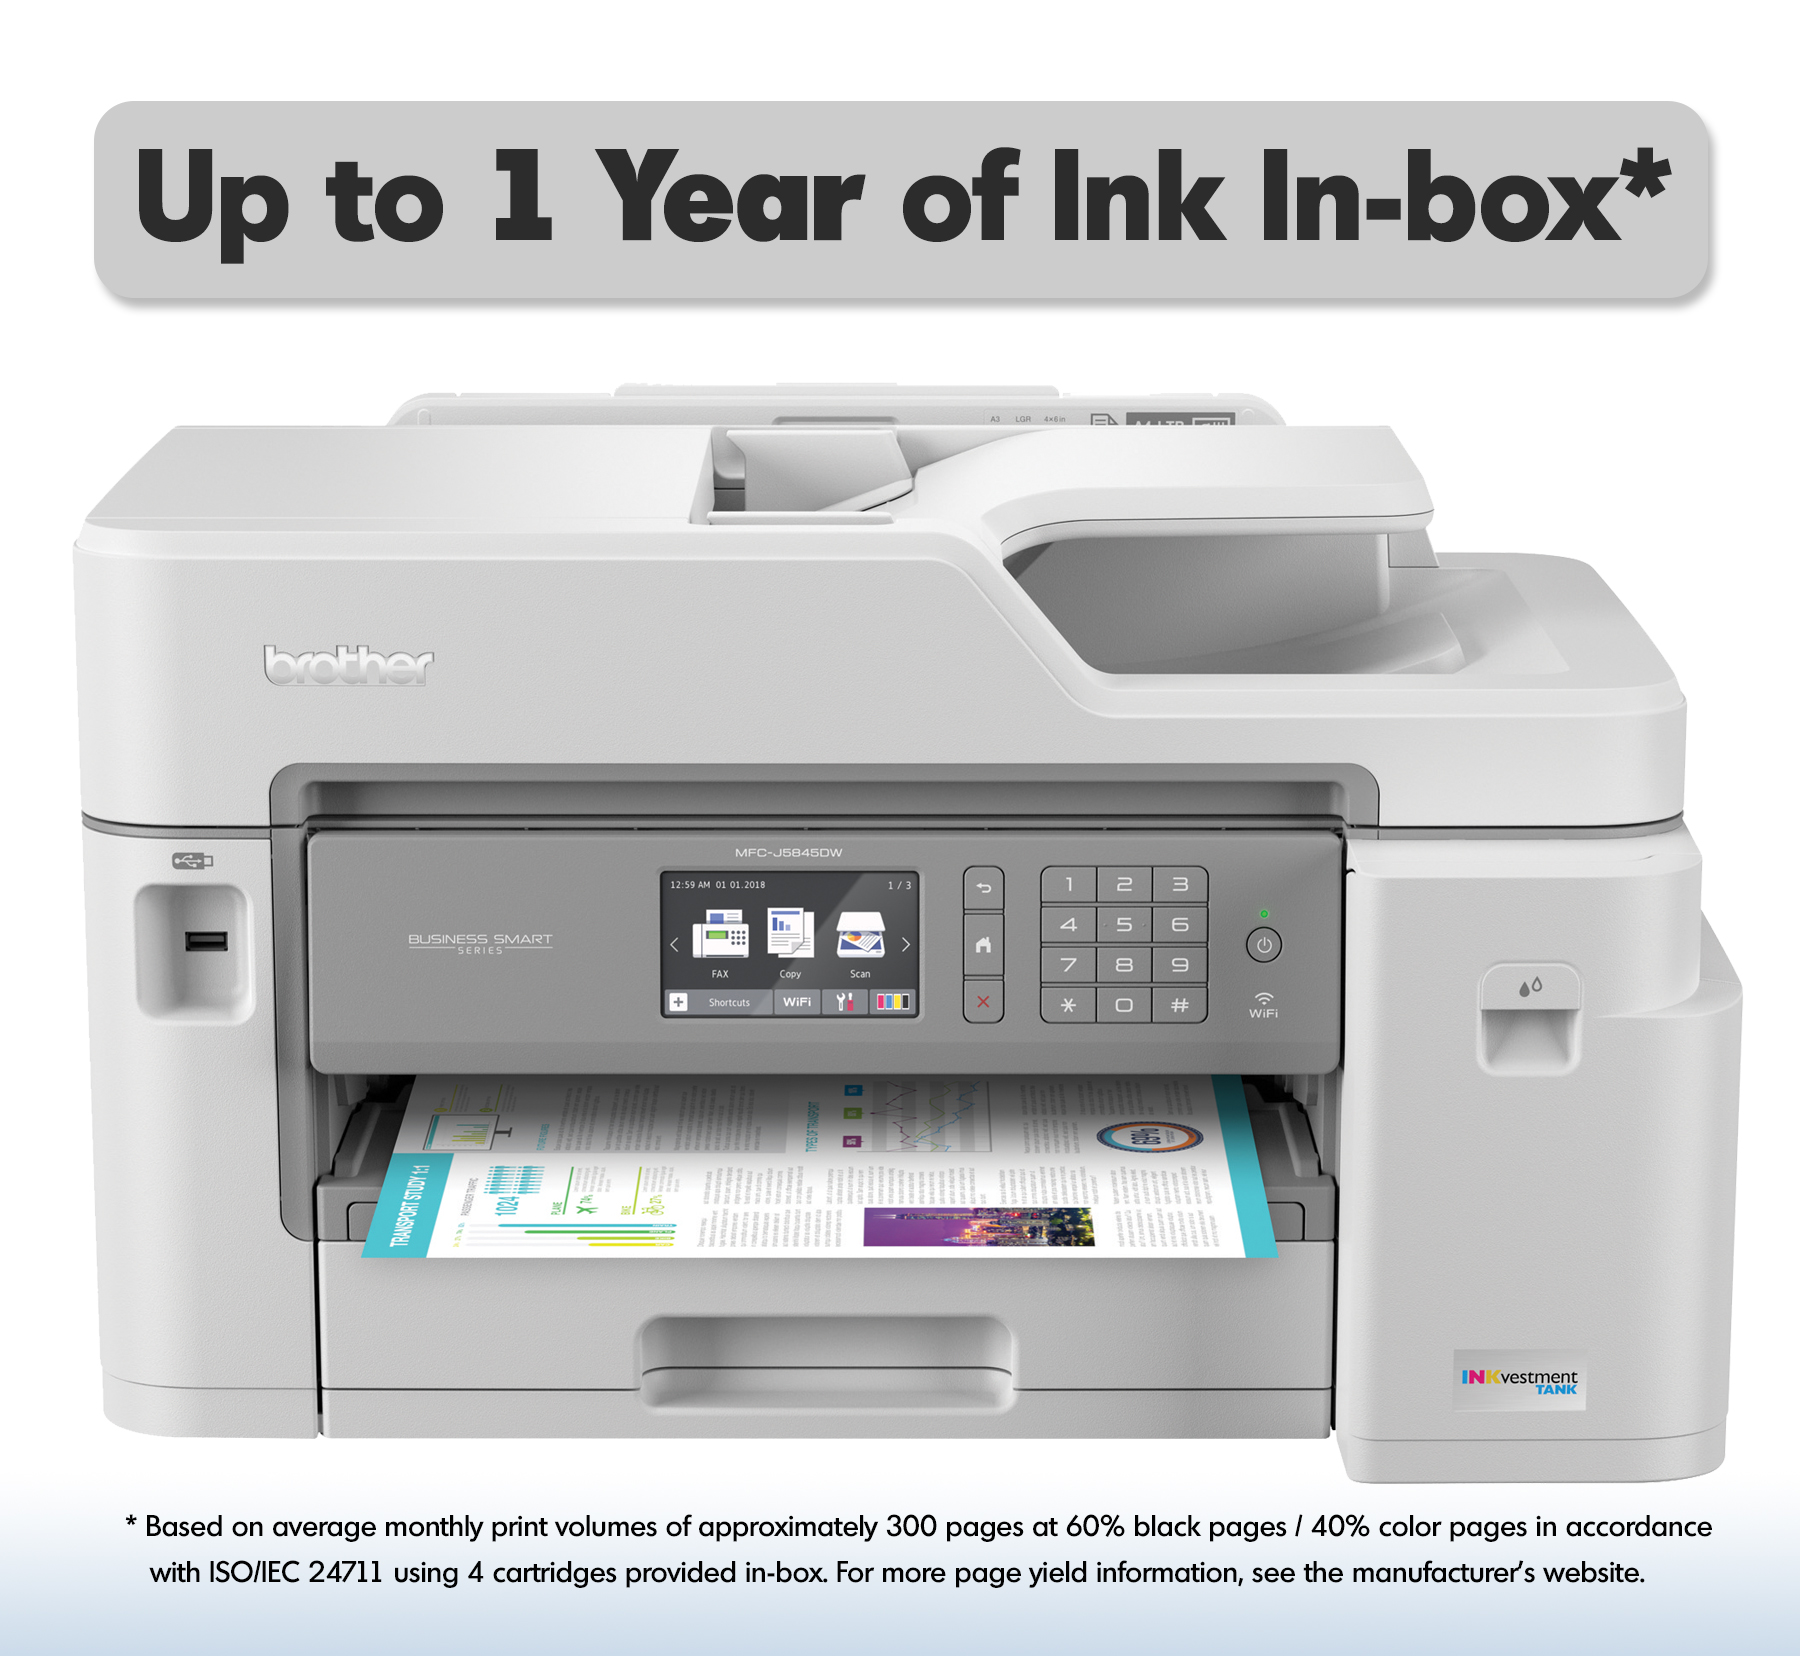 Brother MFC-J5845DW INKvestment Tank Color Inkjet All-in-One Wireless Printer with Up to 1-Year of Ink In-box